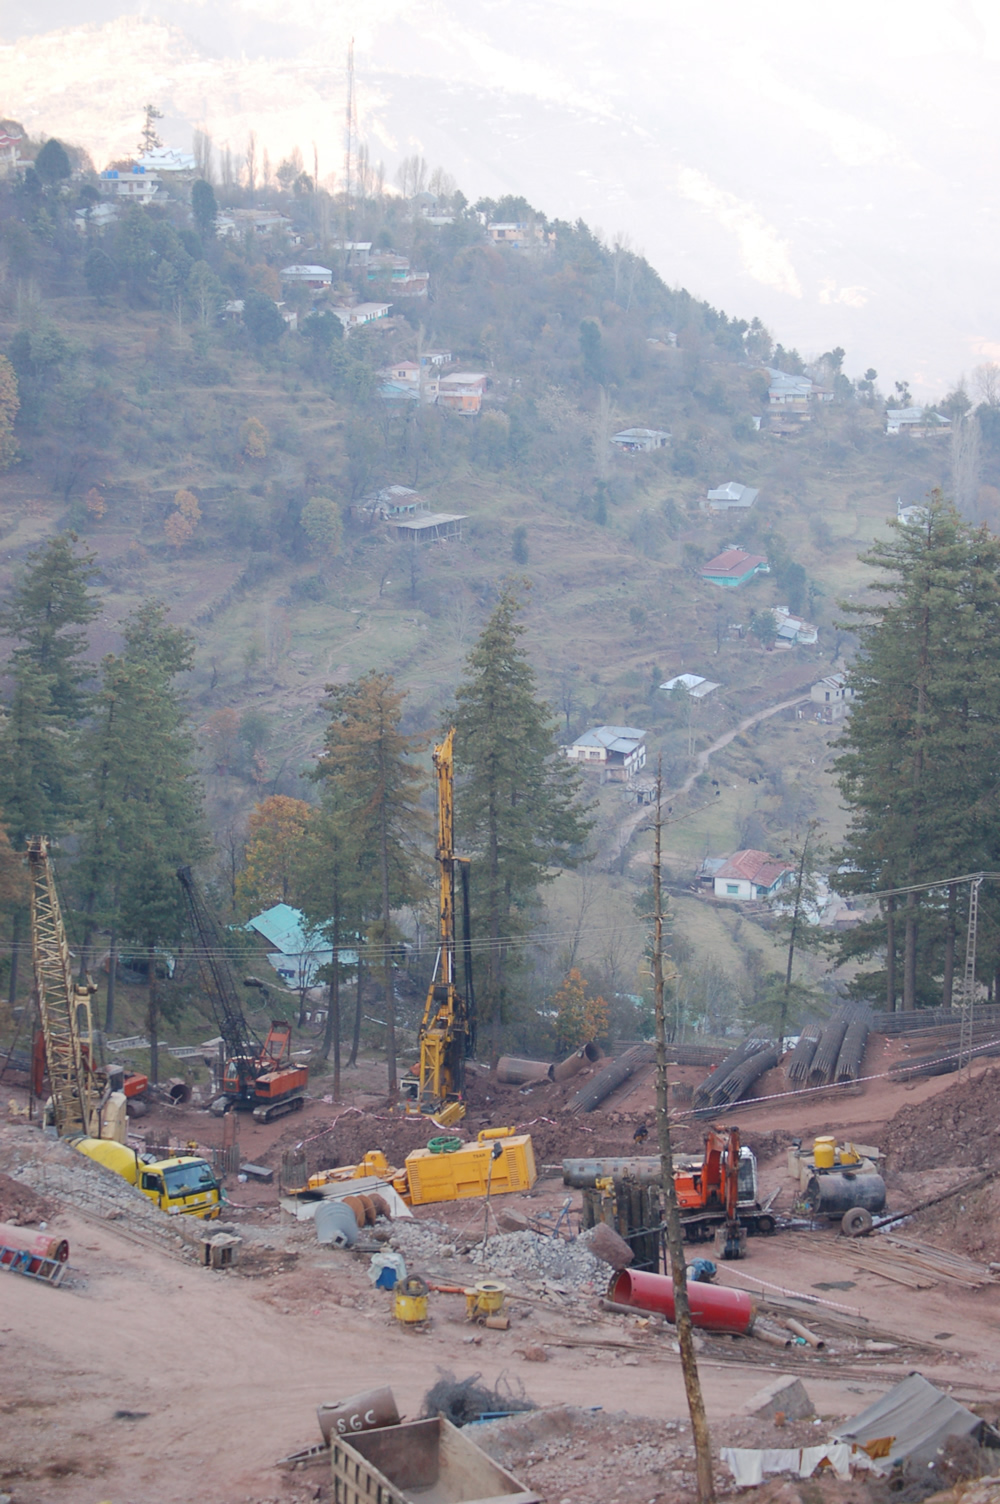 Piling using Hydraulic Rotary Machines for Slope Protection Works at Jhika Gali, Murree 8